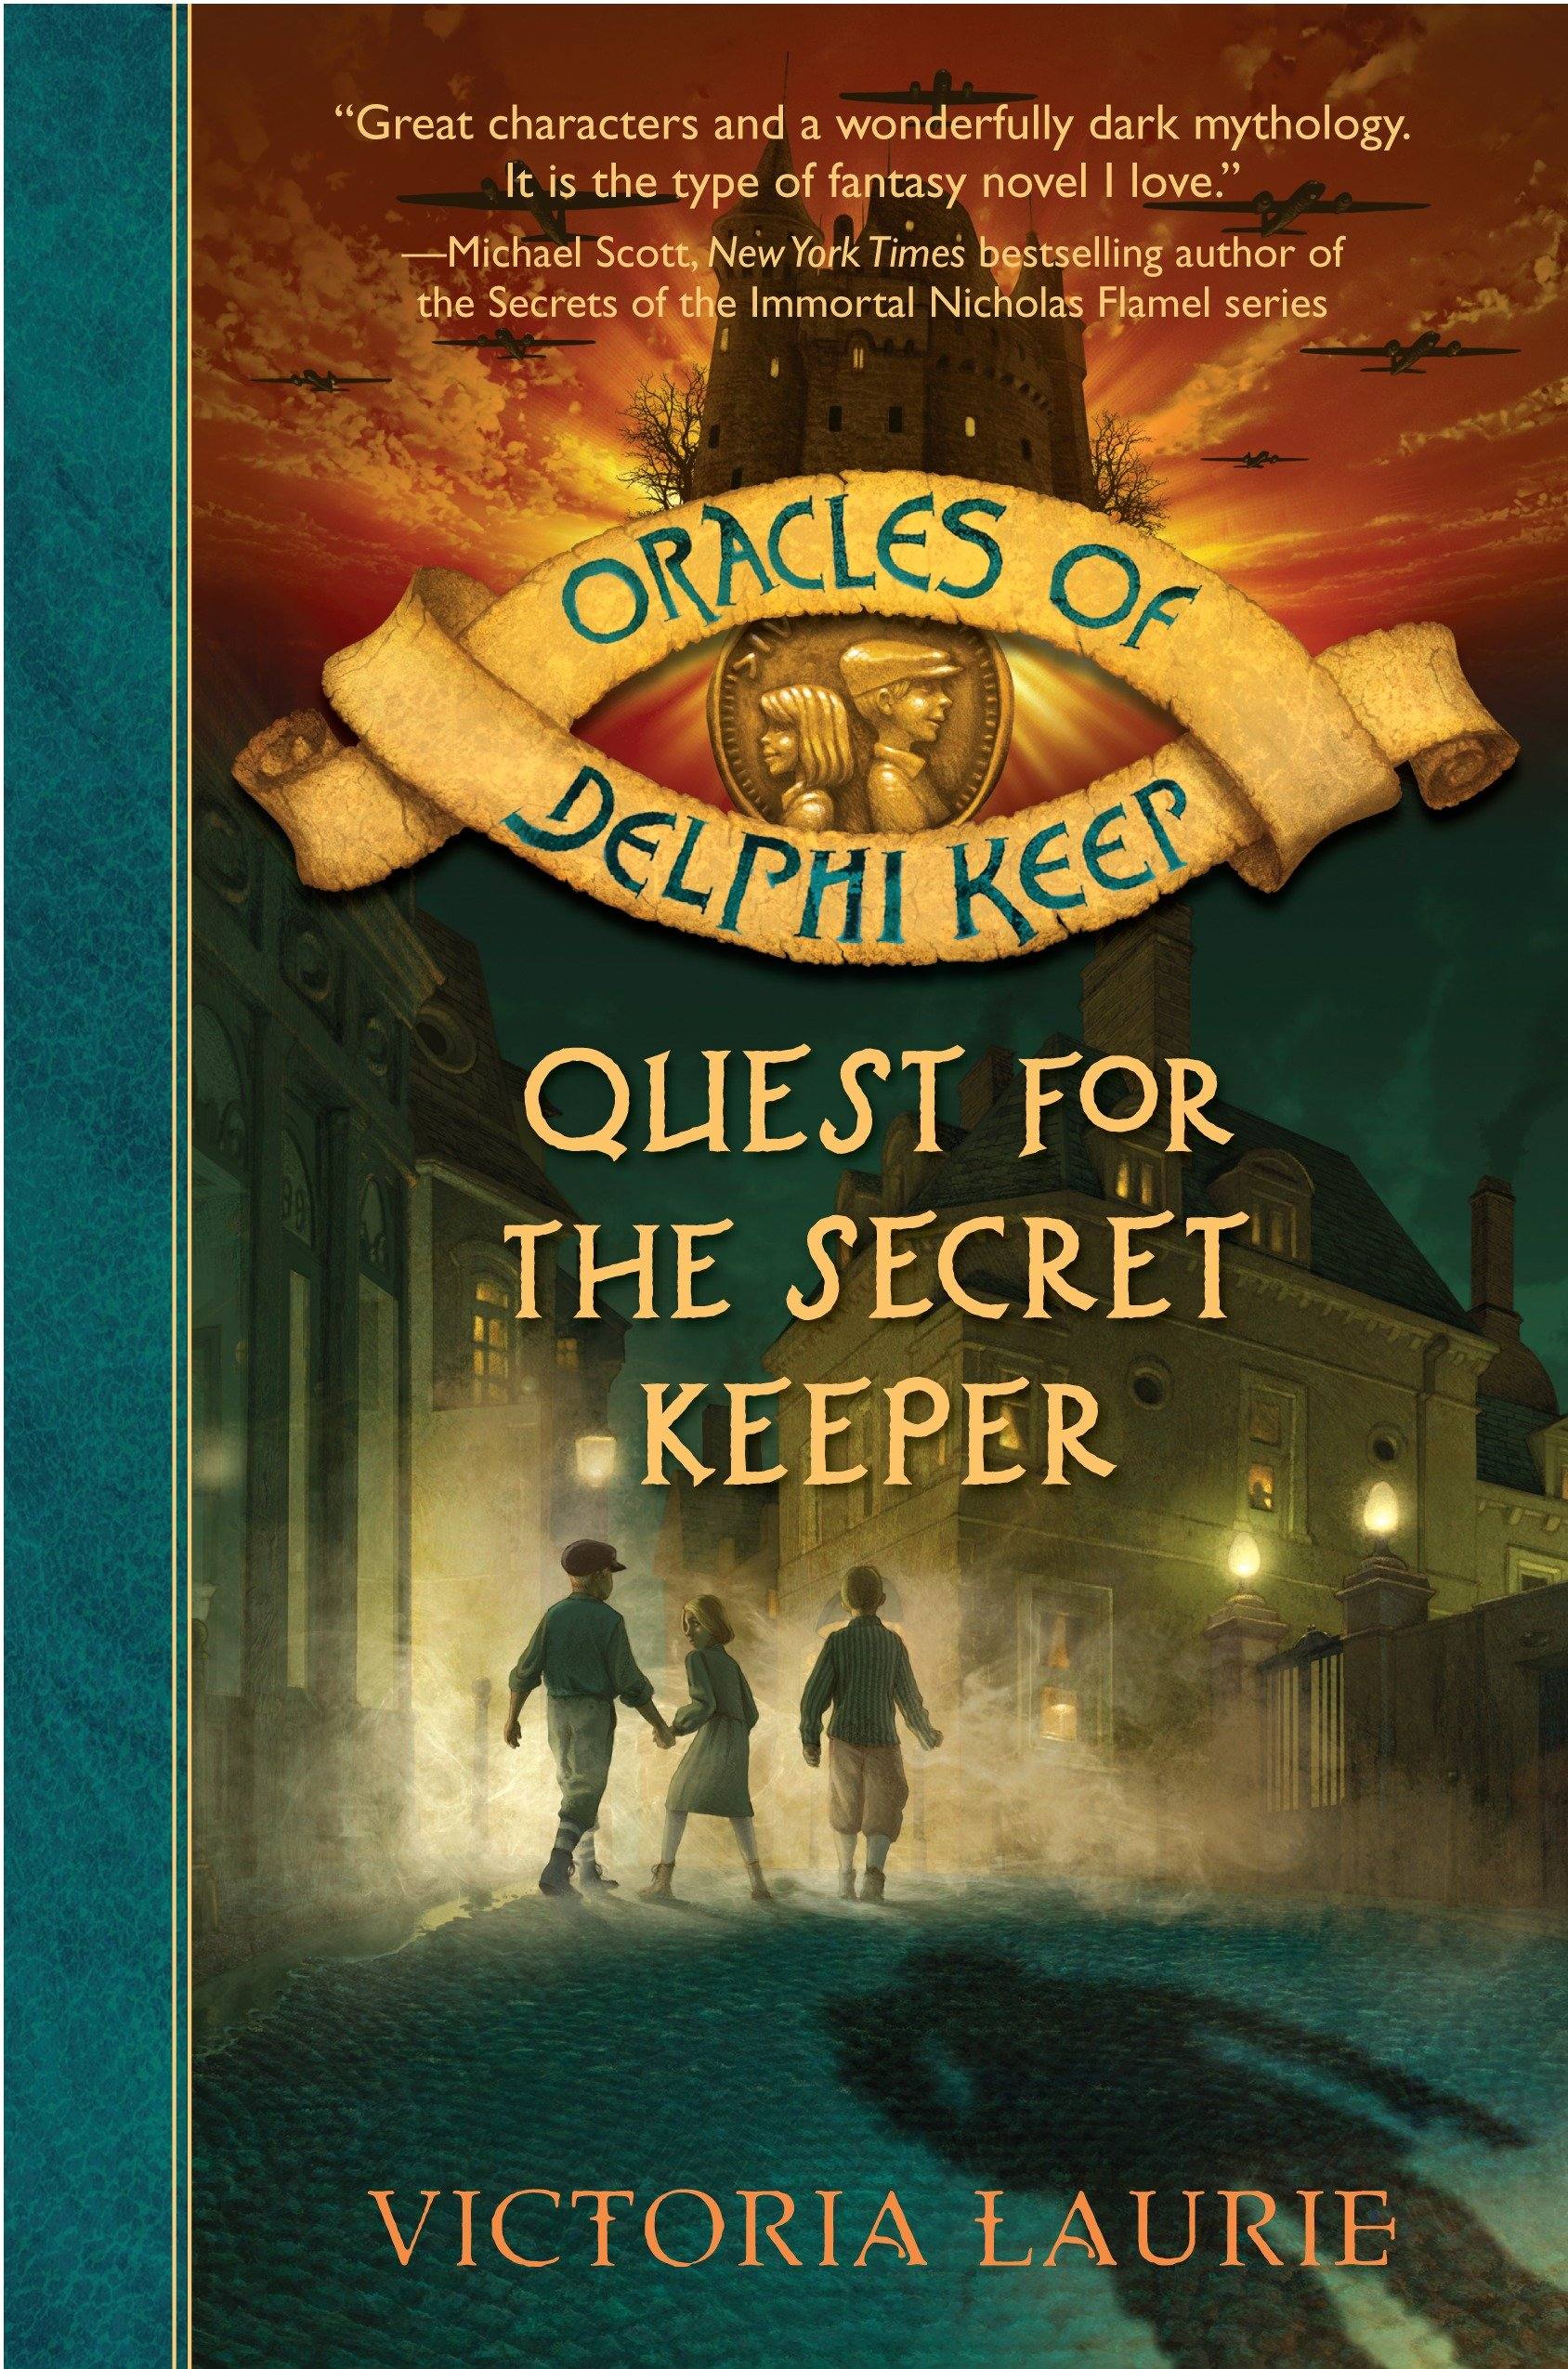 Quest for the secret keeper cover image